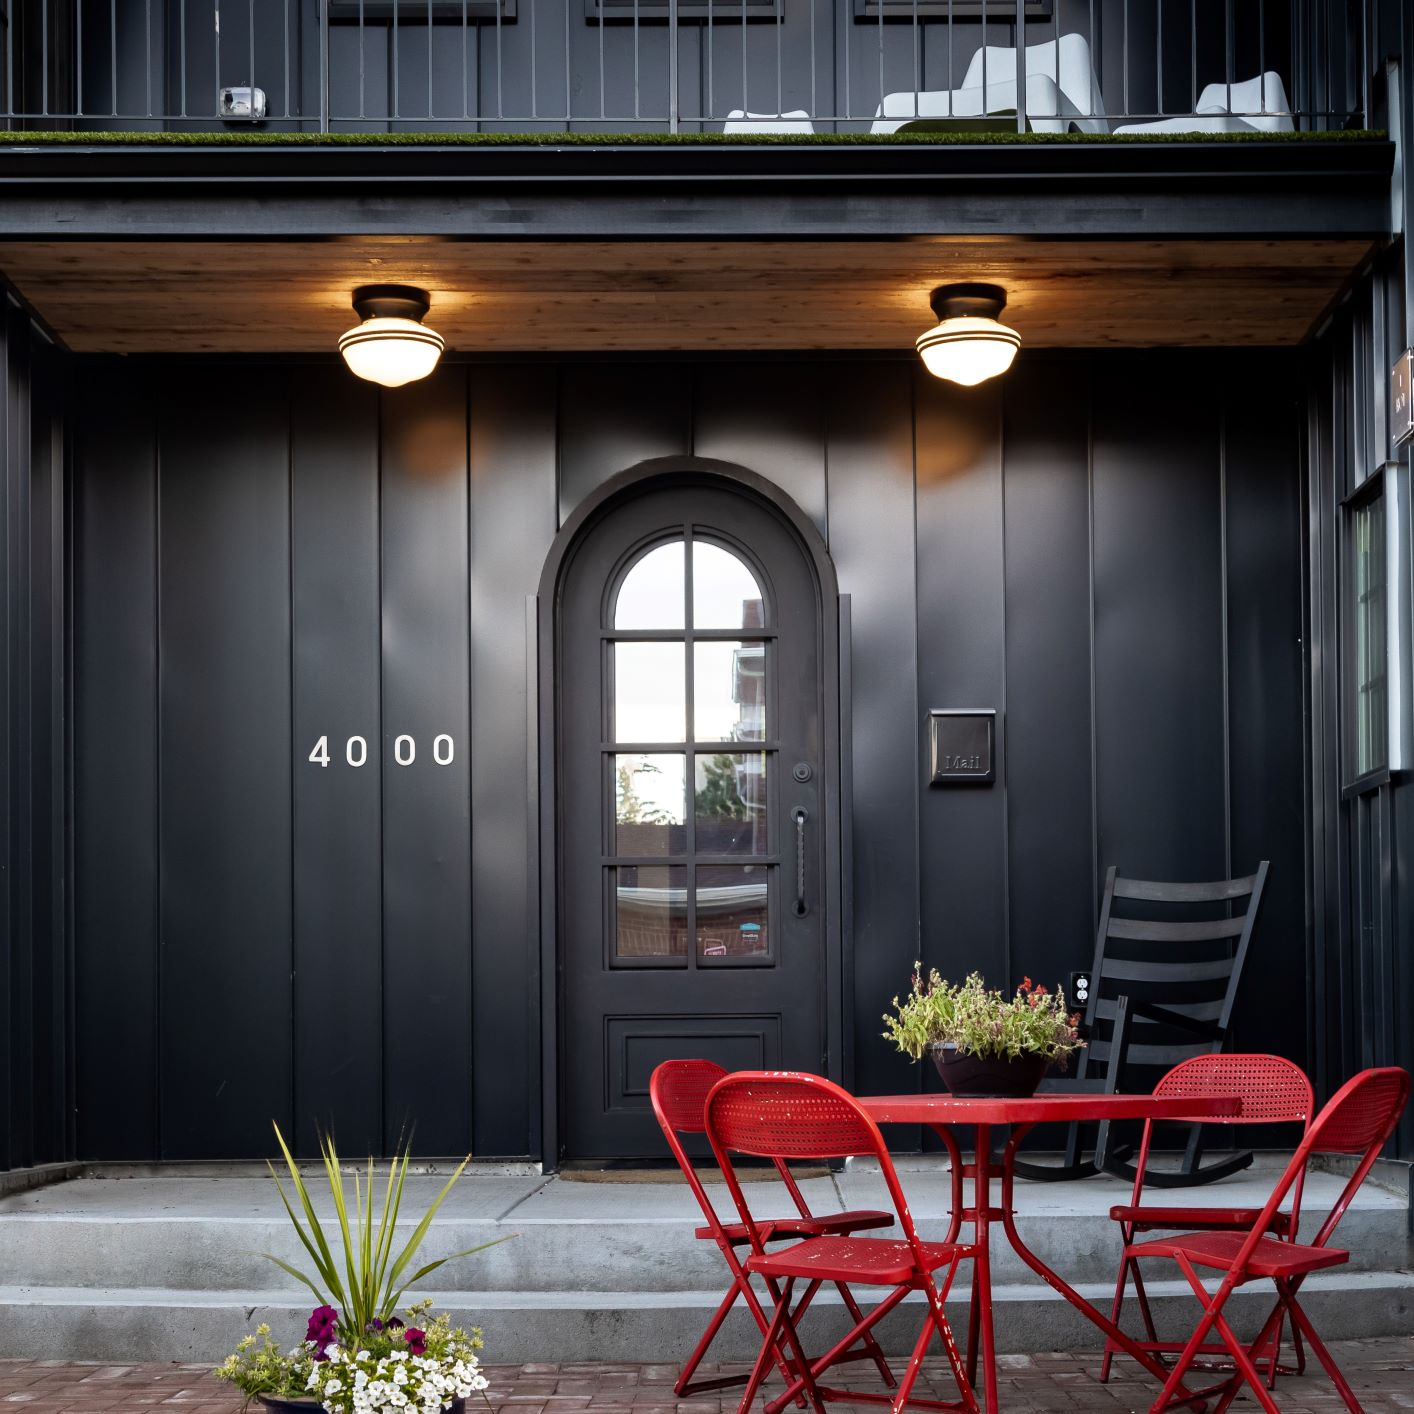 Classic Gooseneck Barn Lights Lend Authenticity to New ...